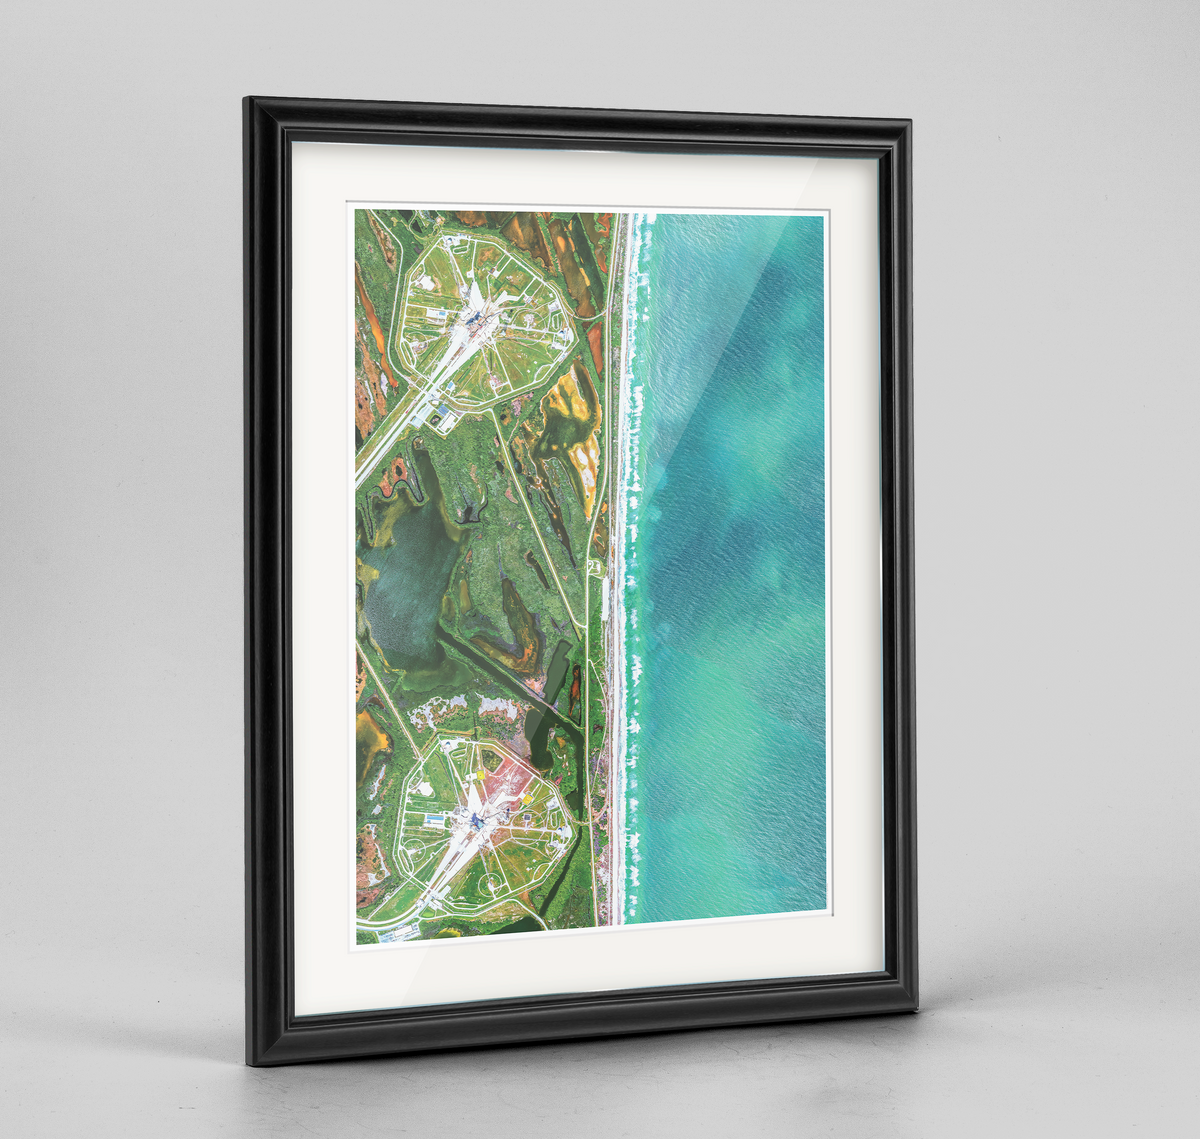 Kennedy Space Center Earth Photography Art Print - Framed